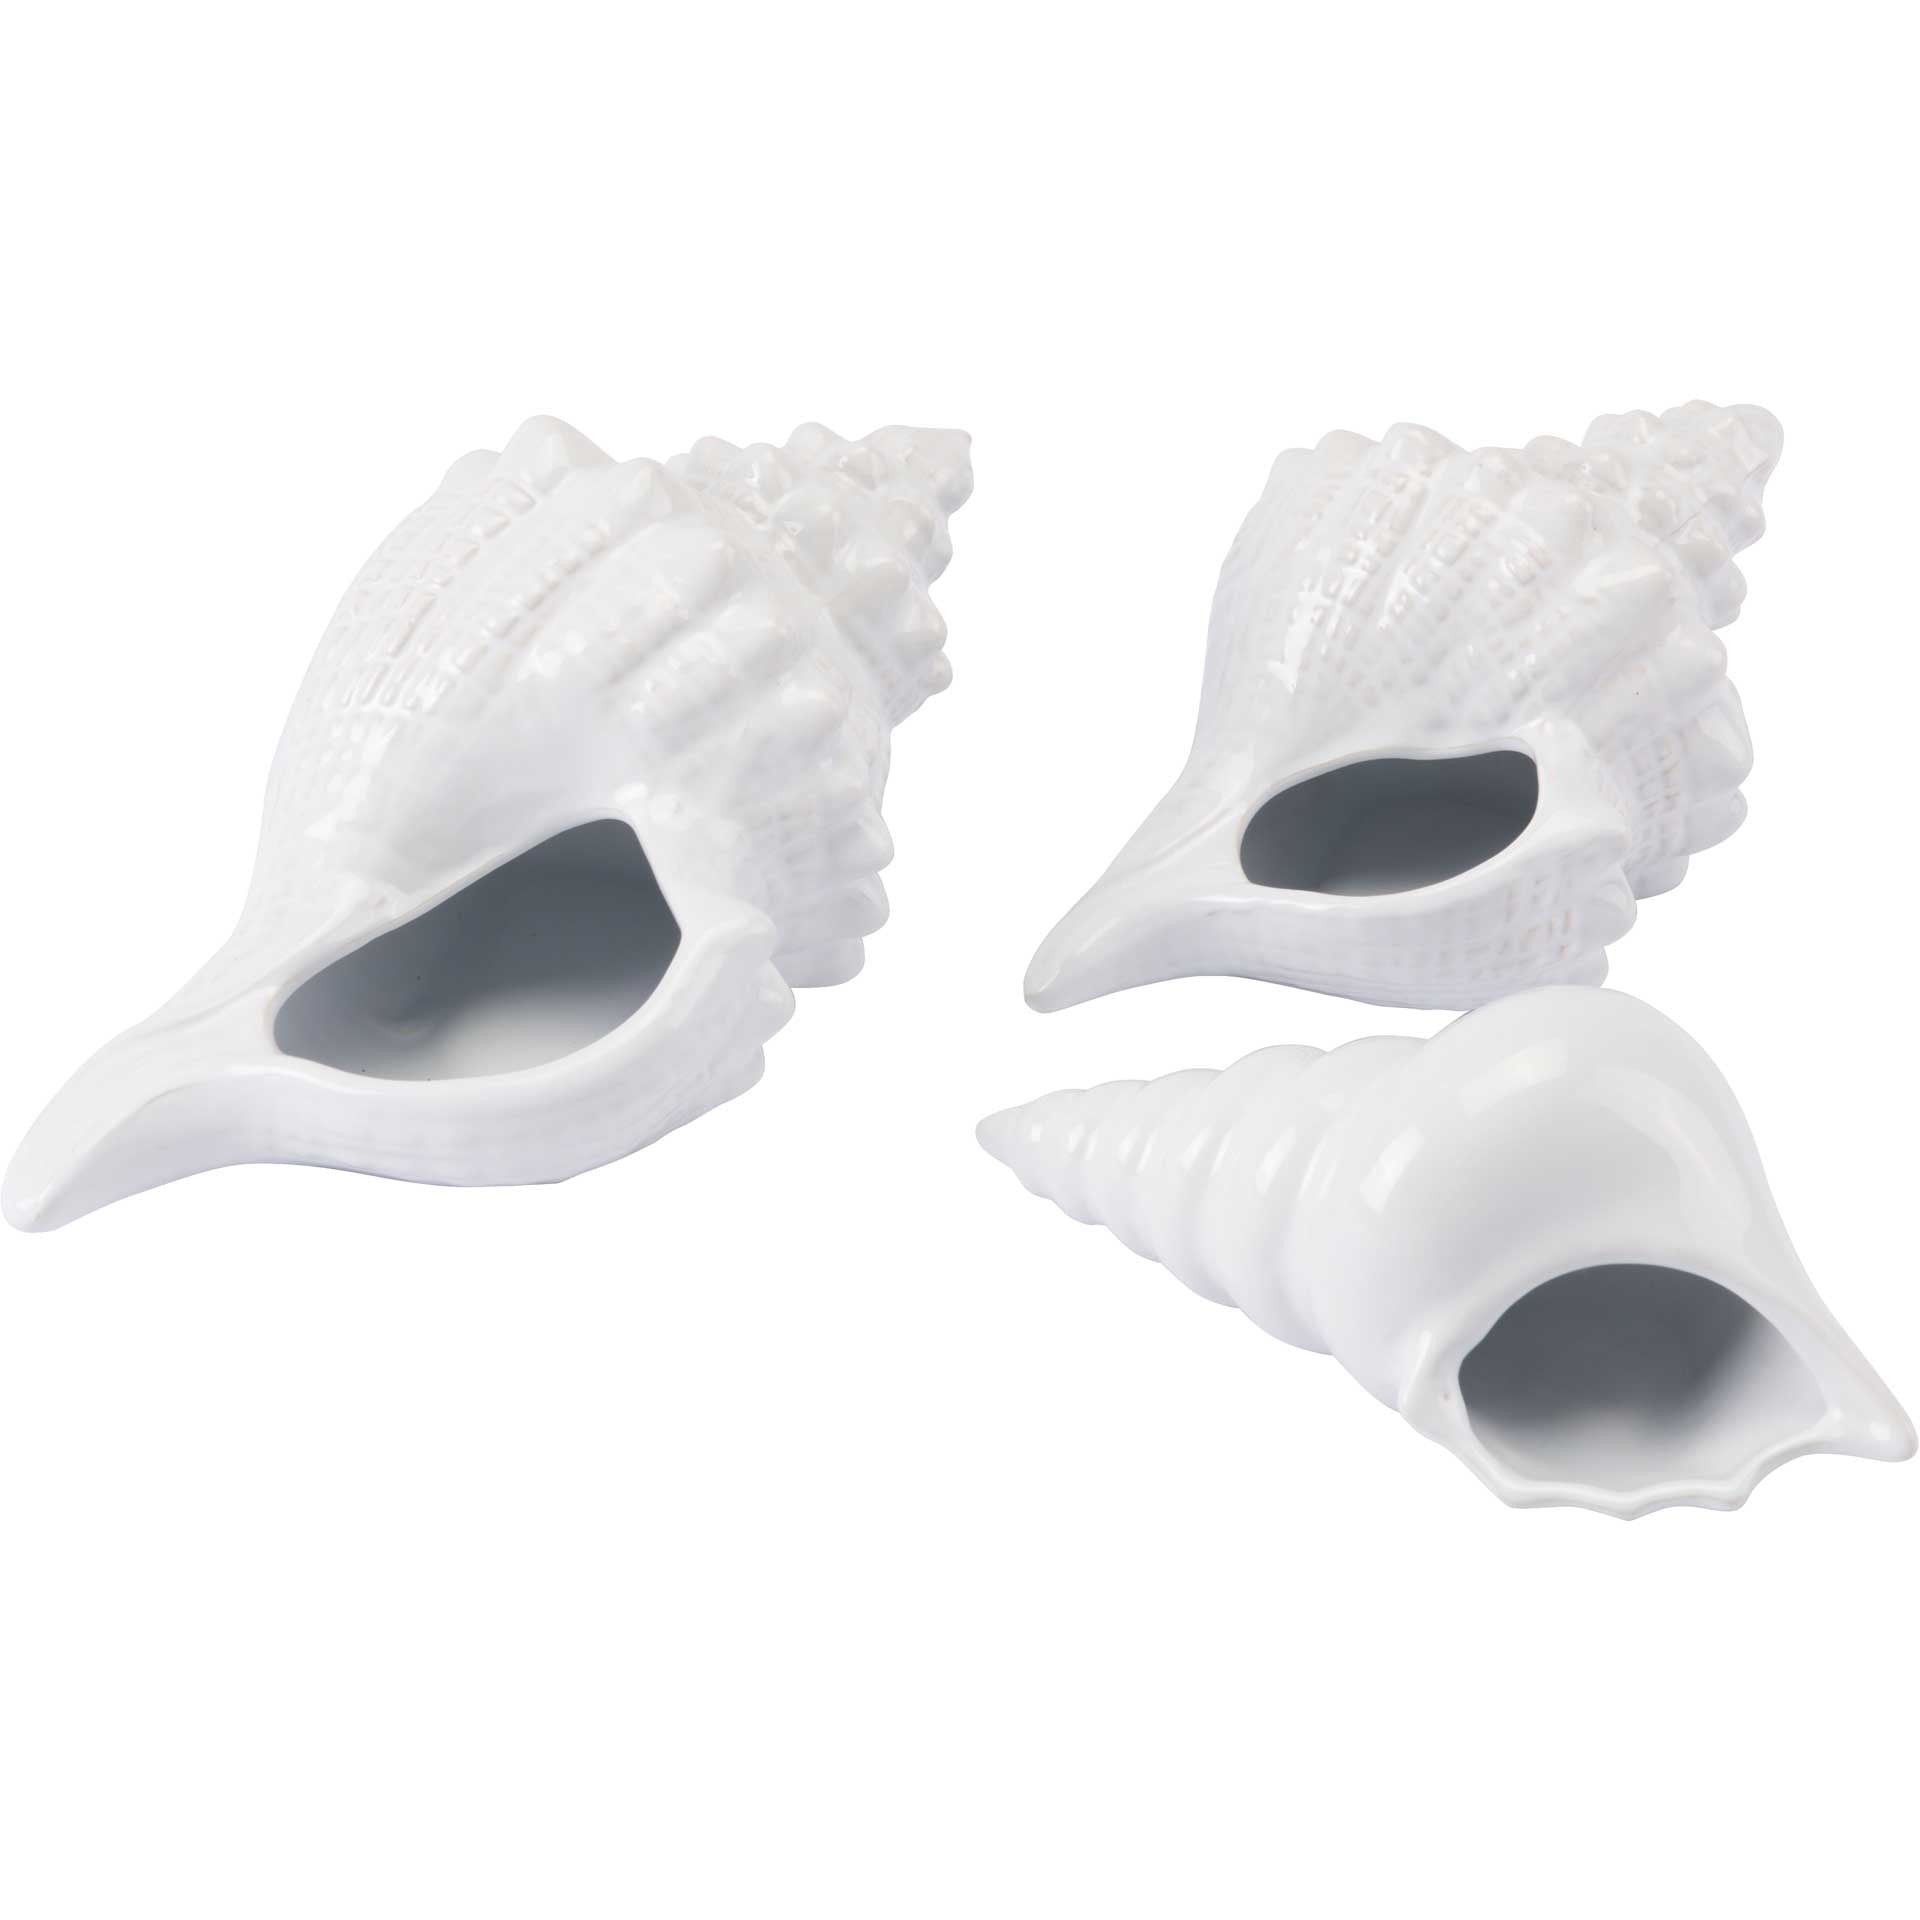 Coastal Ceramic Shell White